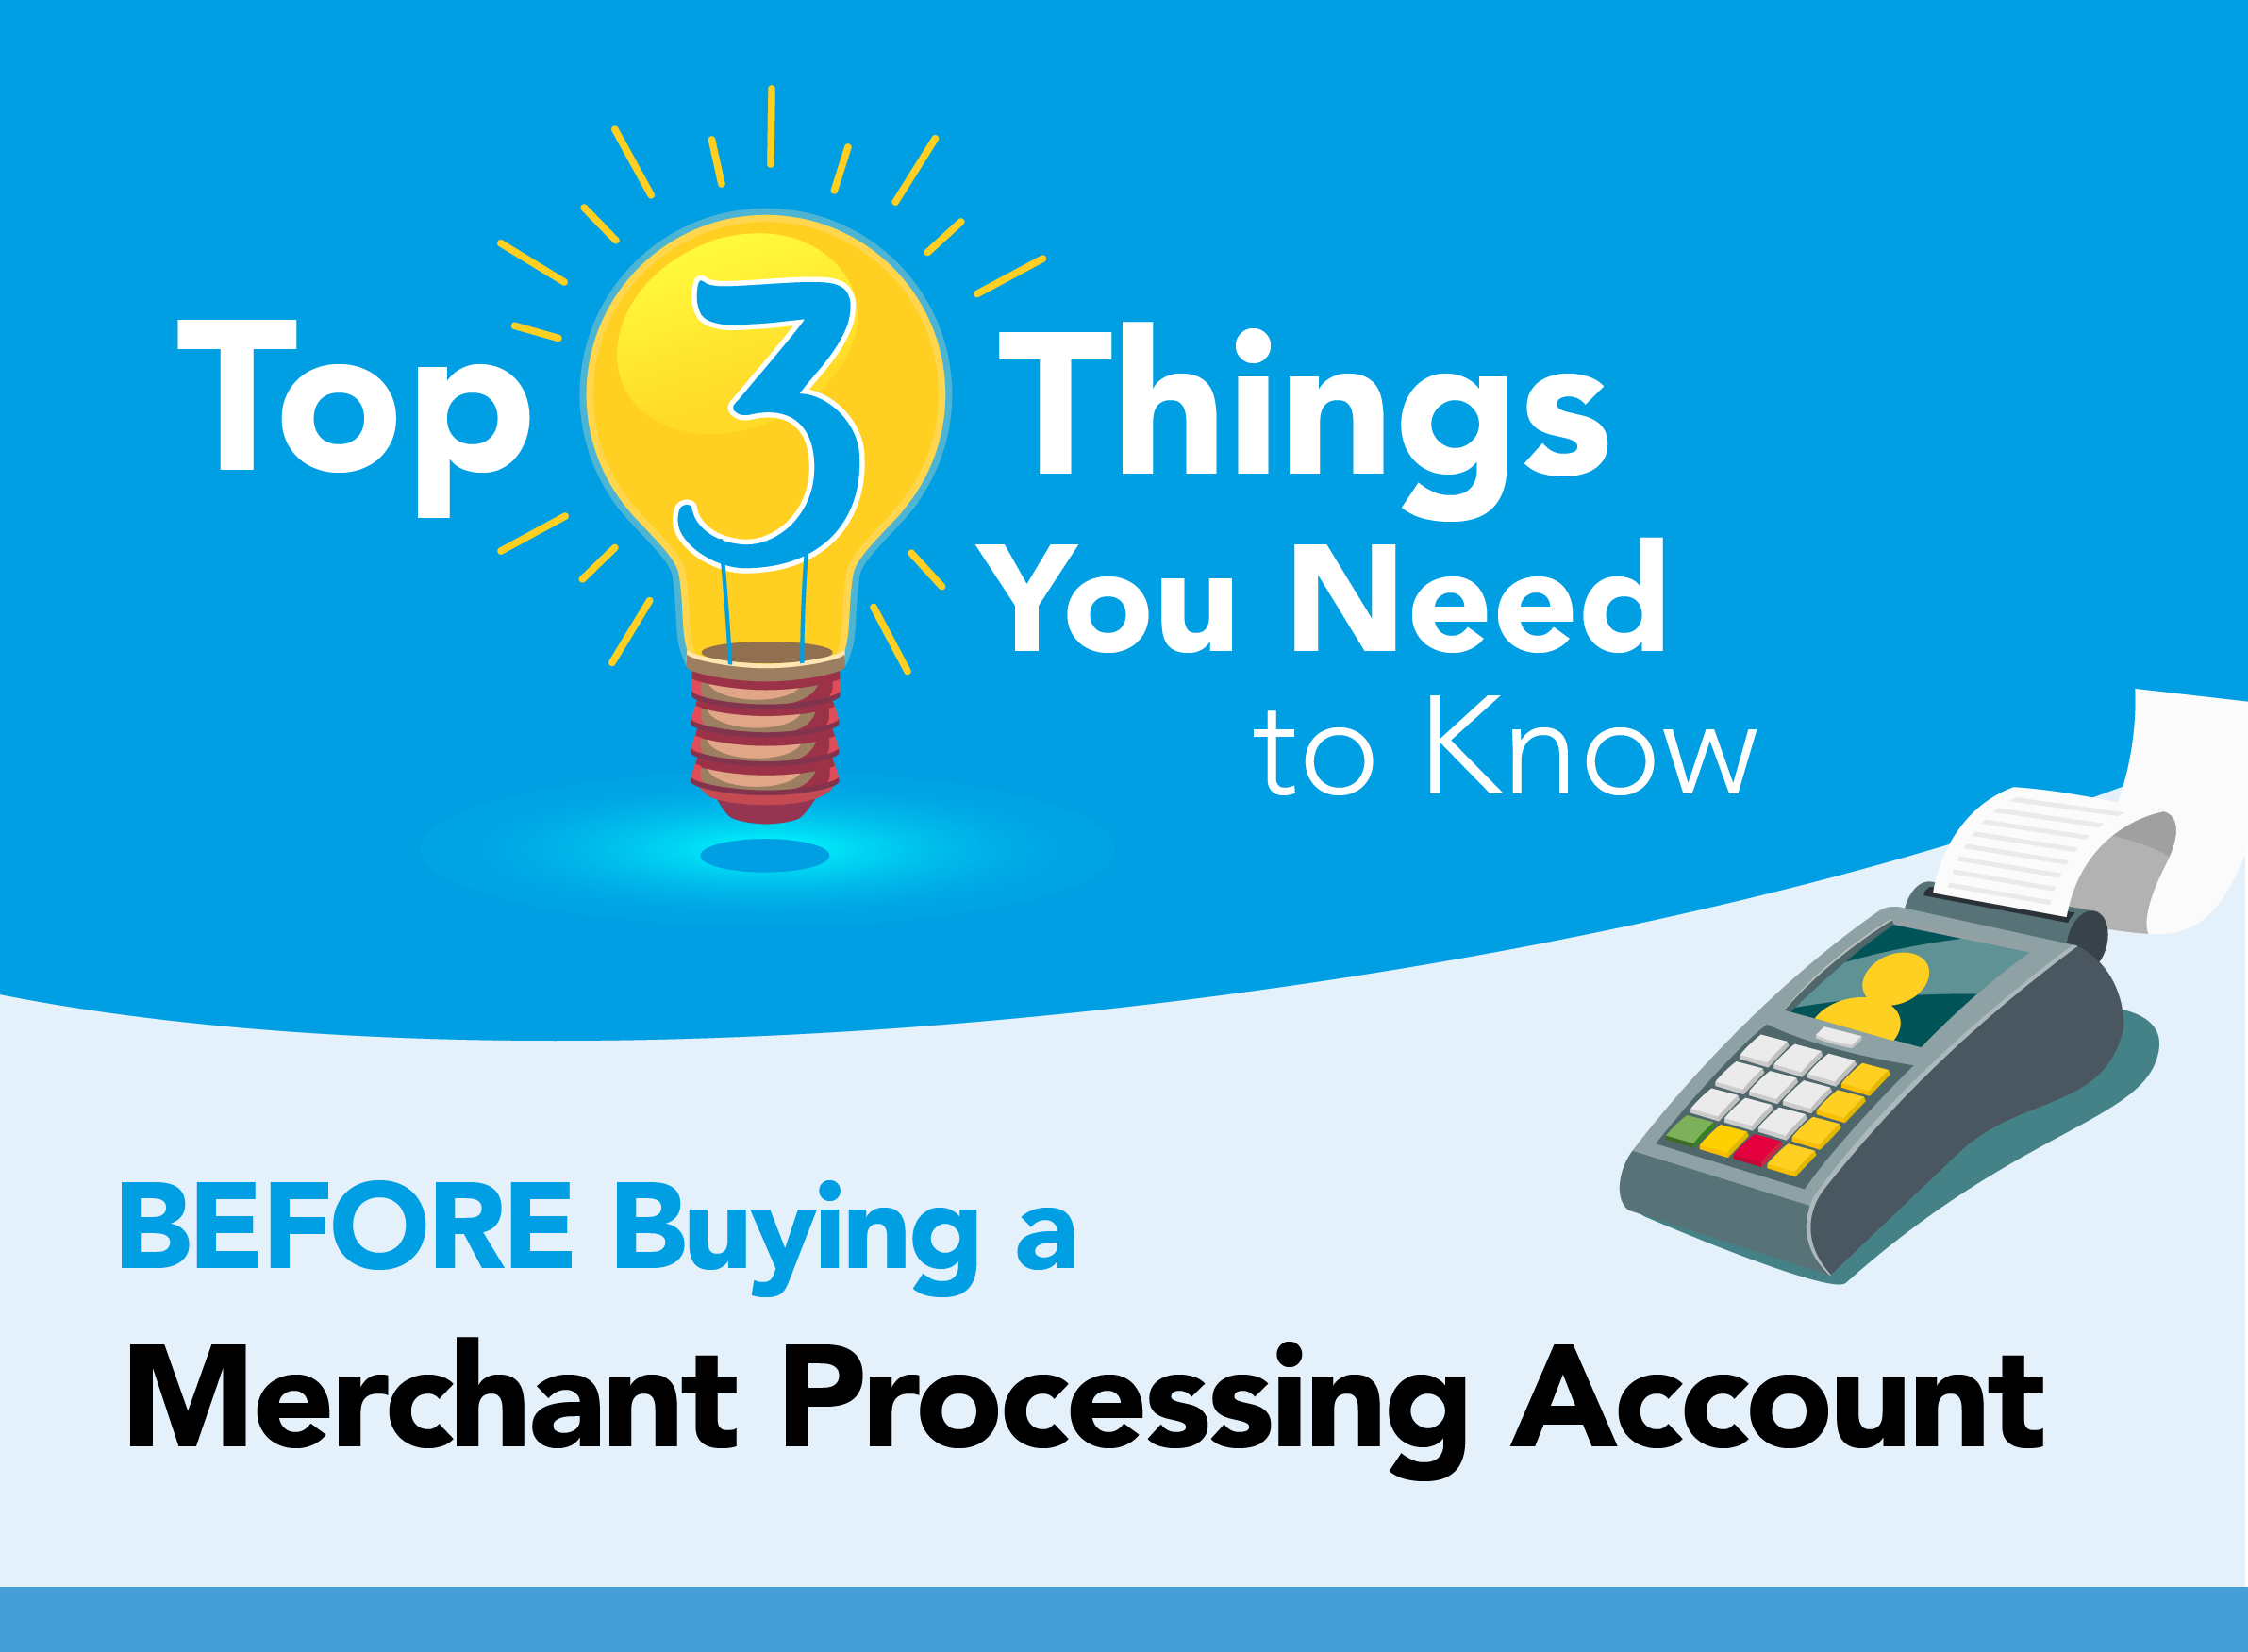 Top 3 Things You Need to Know BEFORE Buying a Merchant Processing Account